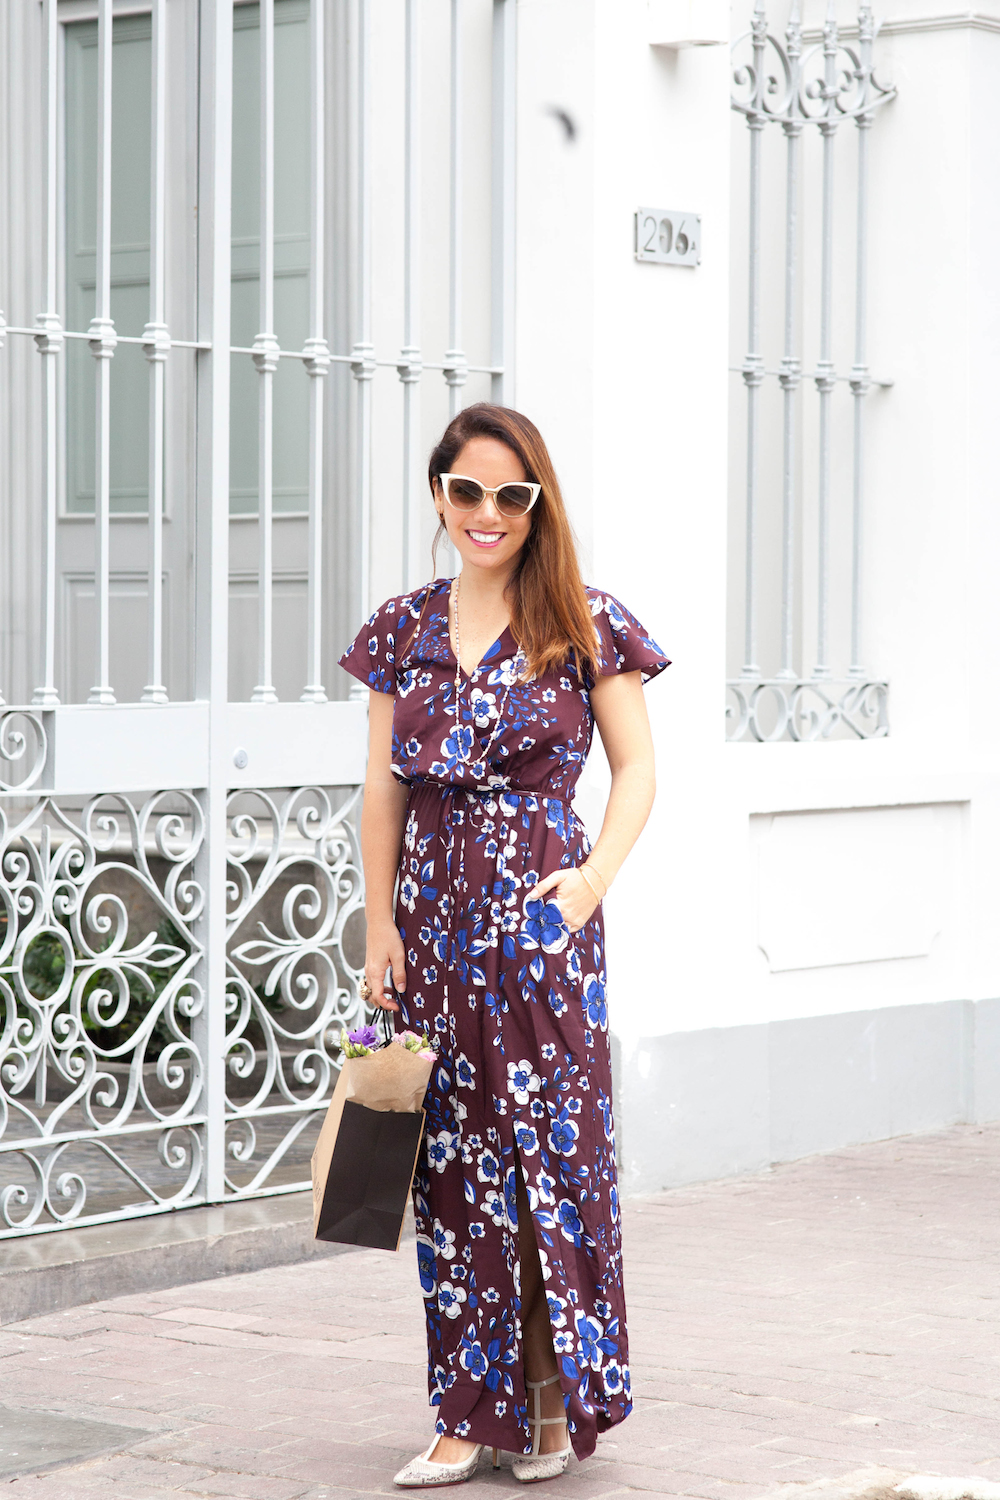 La vida de Serendipity - Banana Republic Maxi Floral Dress - Fendi Sunglasses -